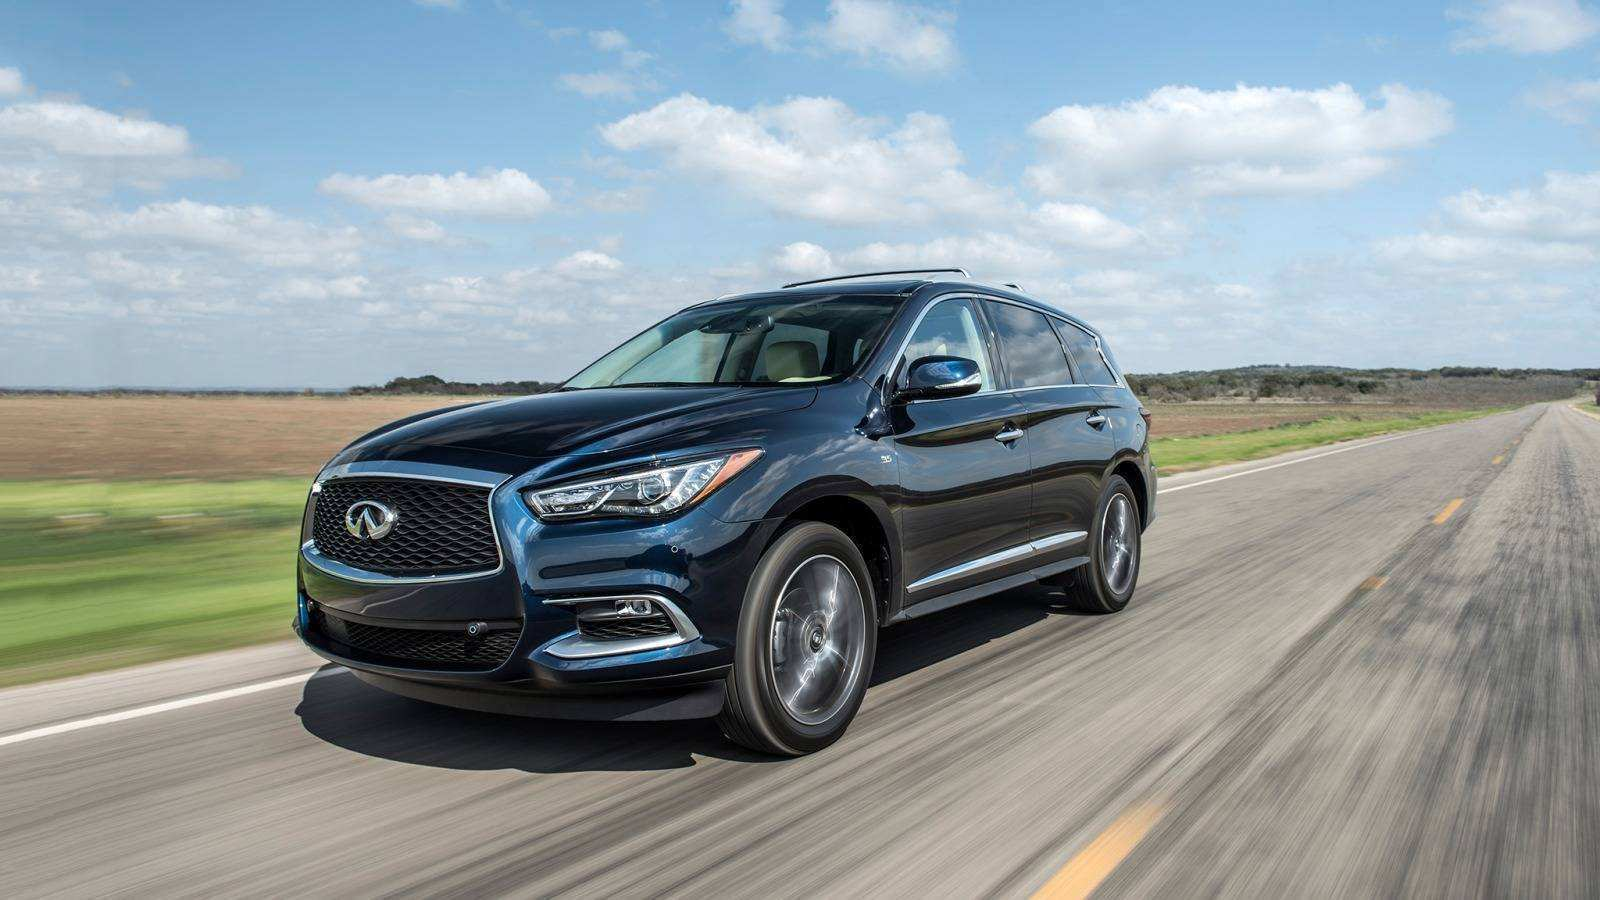 19 New The 2019 Infiniti Qx60 Trim Levels Release Configurations for The 2019 Infiniti Qx60 Trim Levels Release